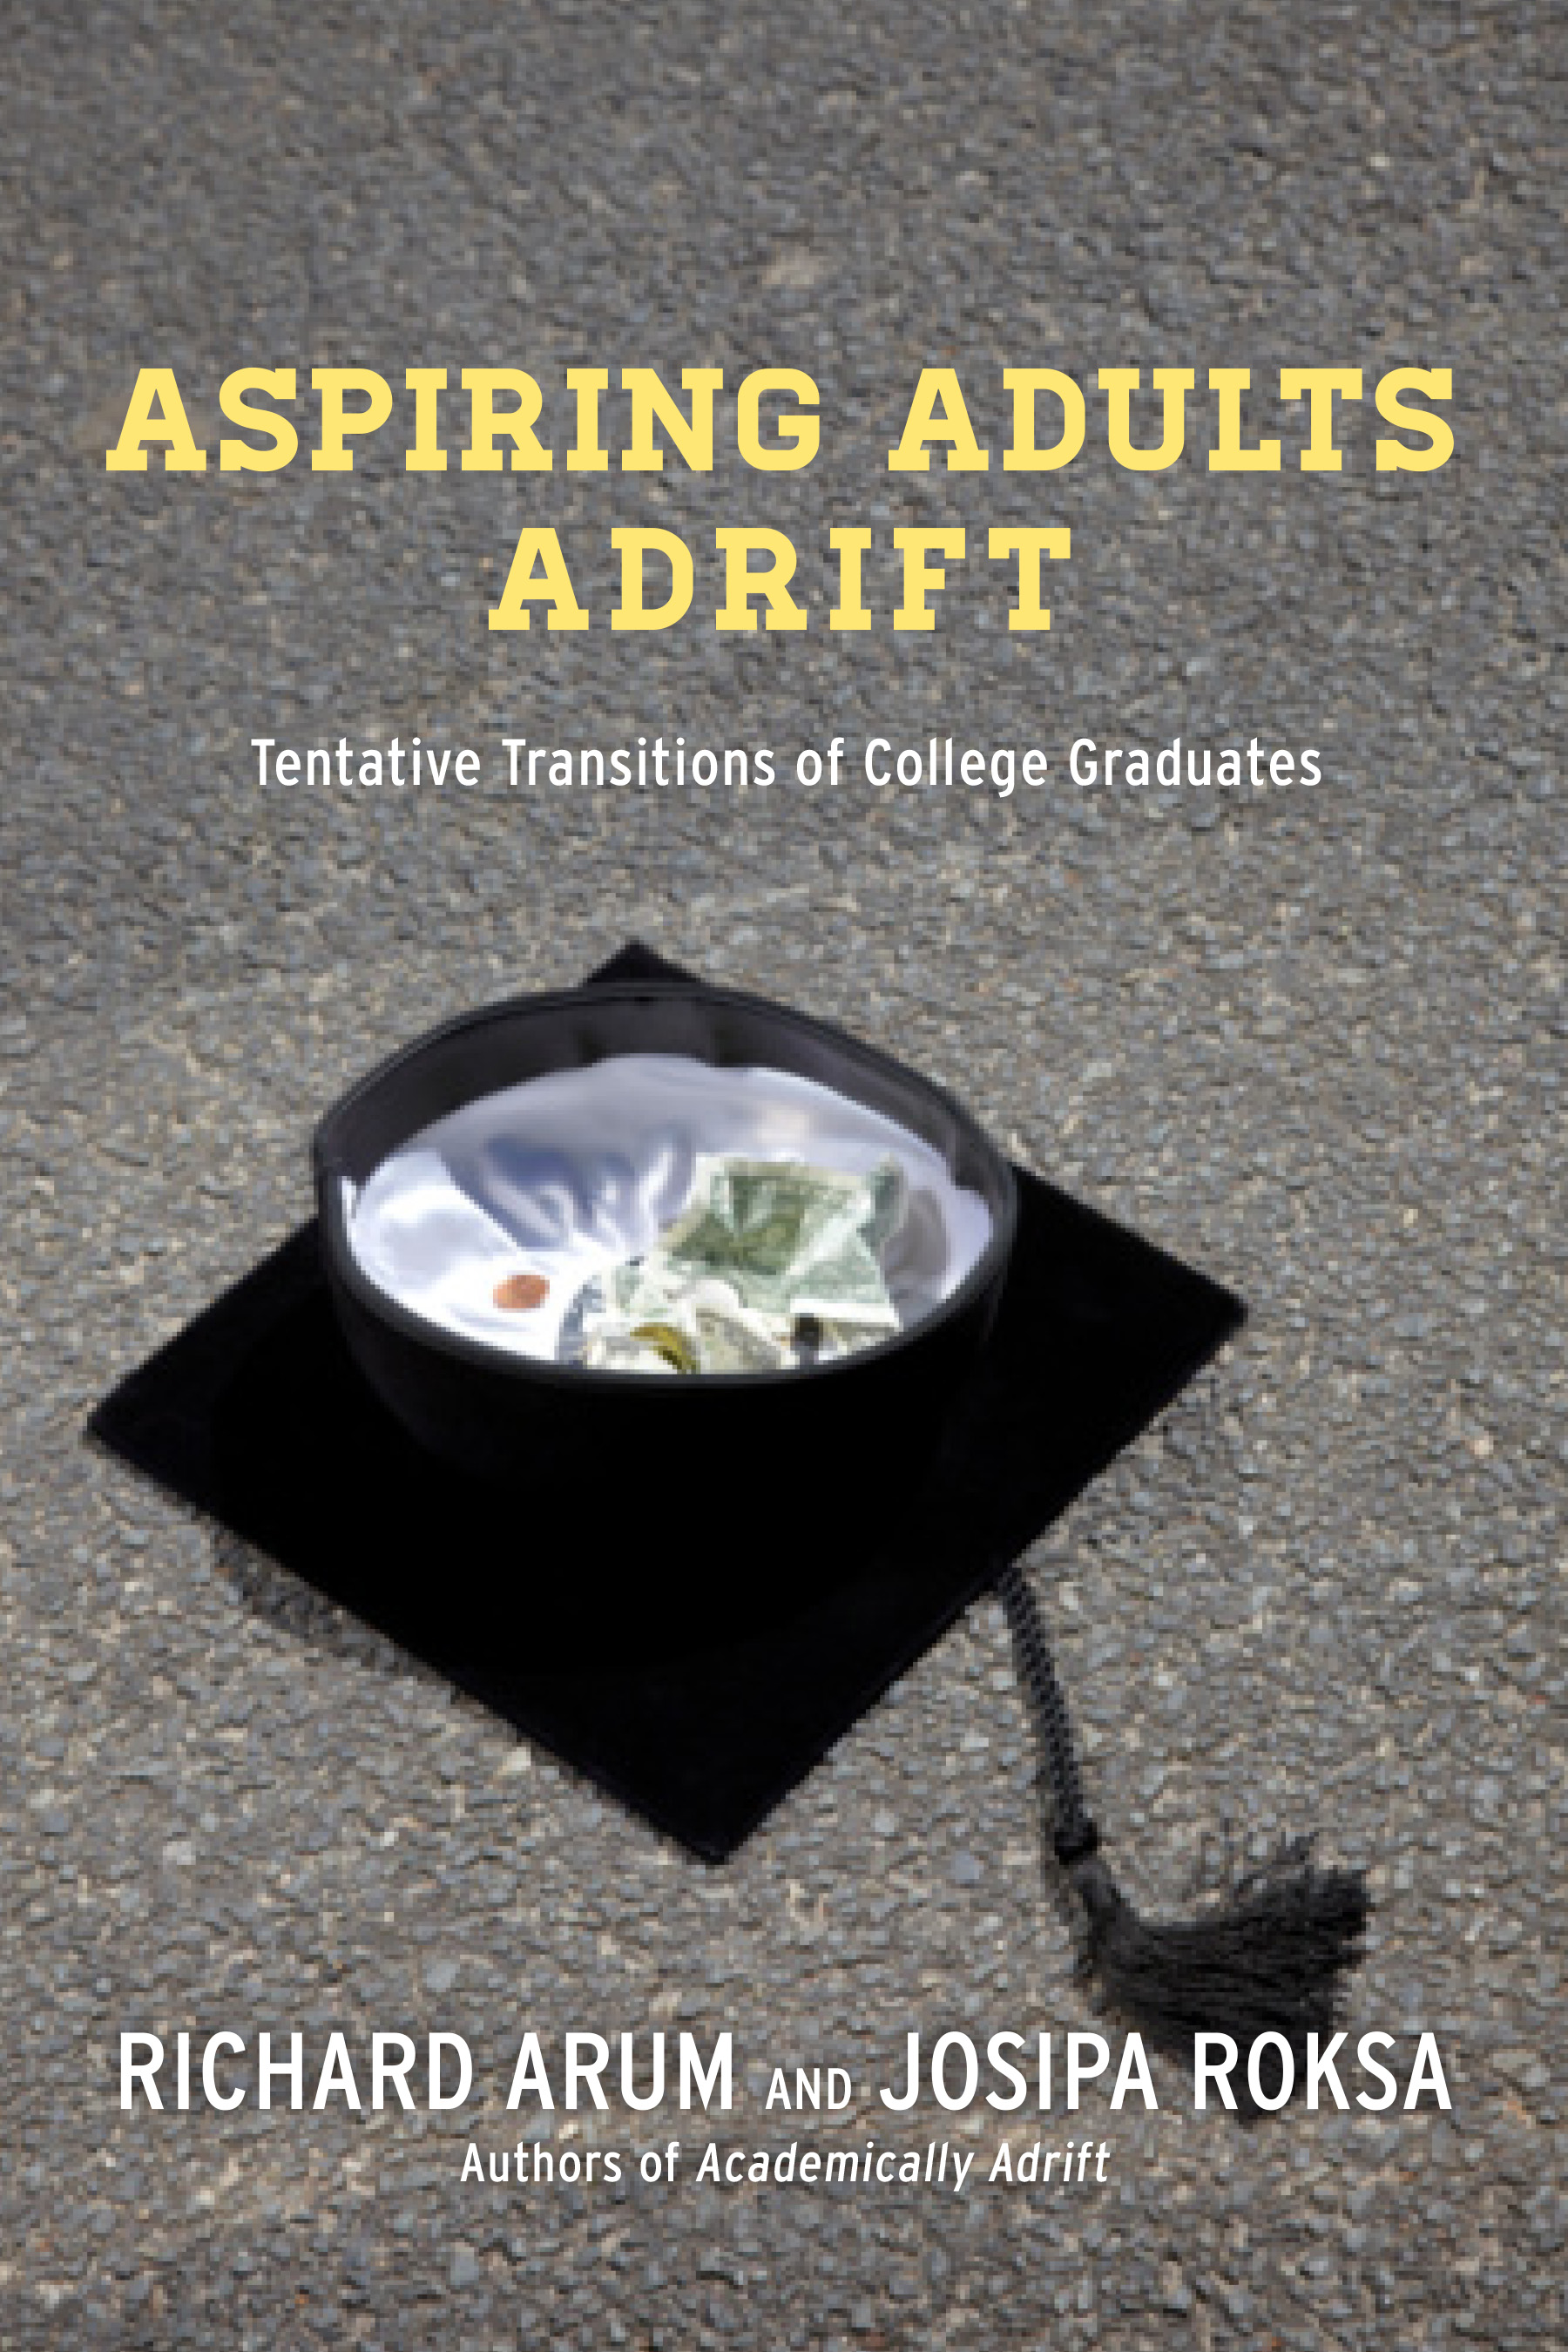 Aspiring Adults Adrift